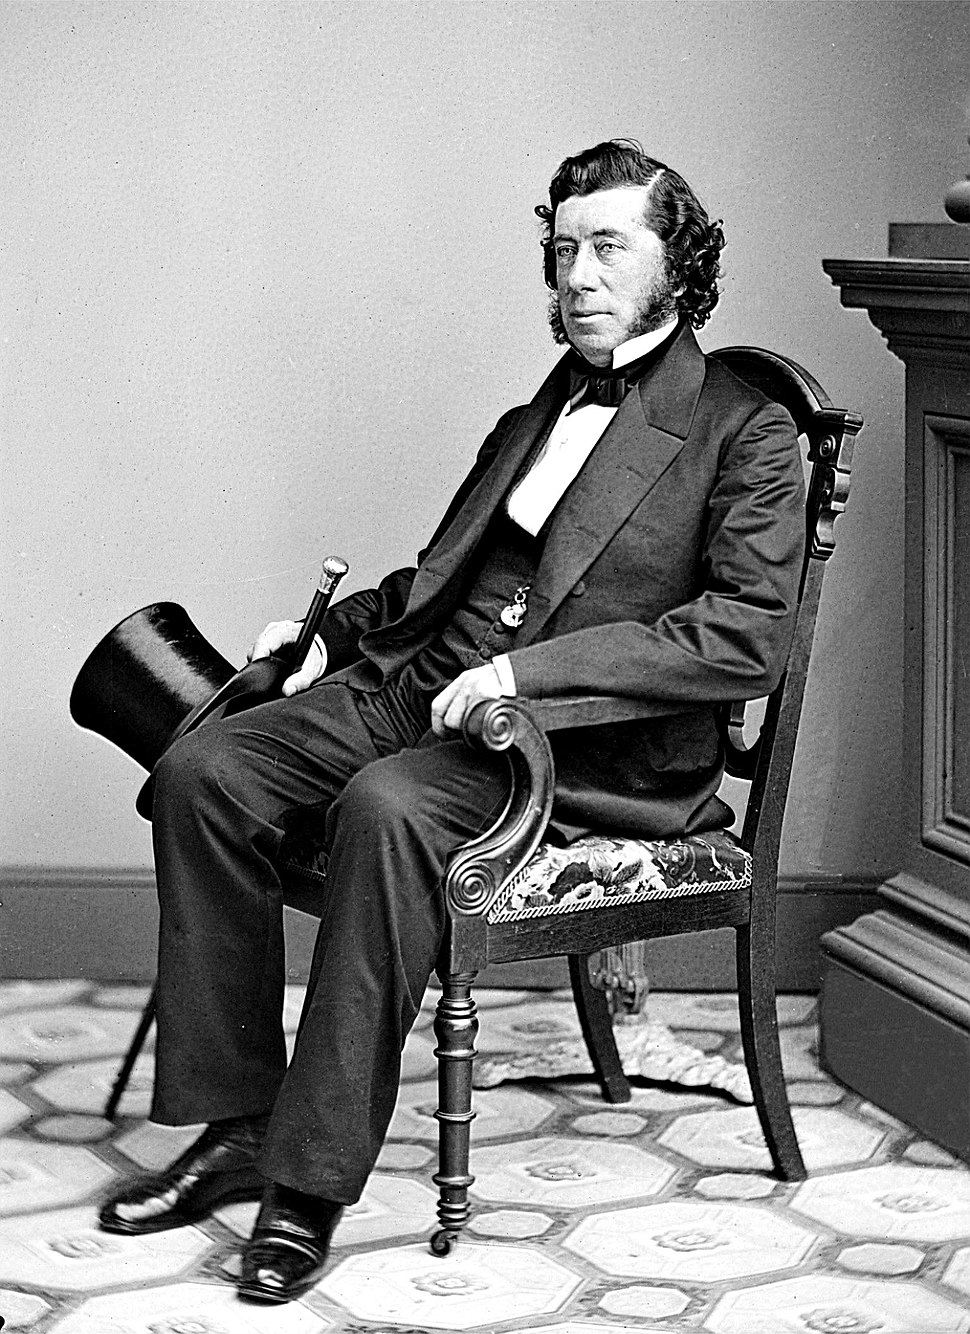 Studio portrait photo of Sen. Hamilton Fish seated position showing head and shoulders with top hat and cane held in right hand.